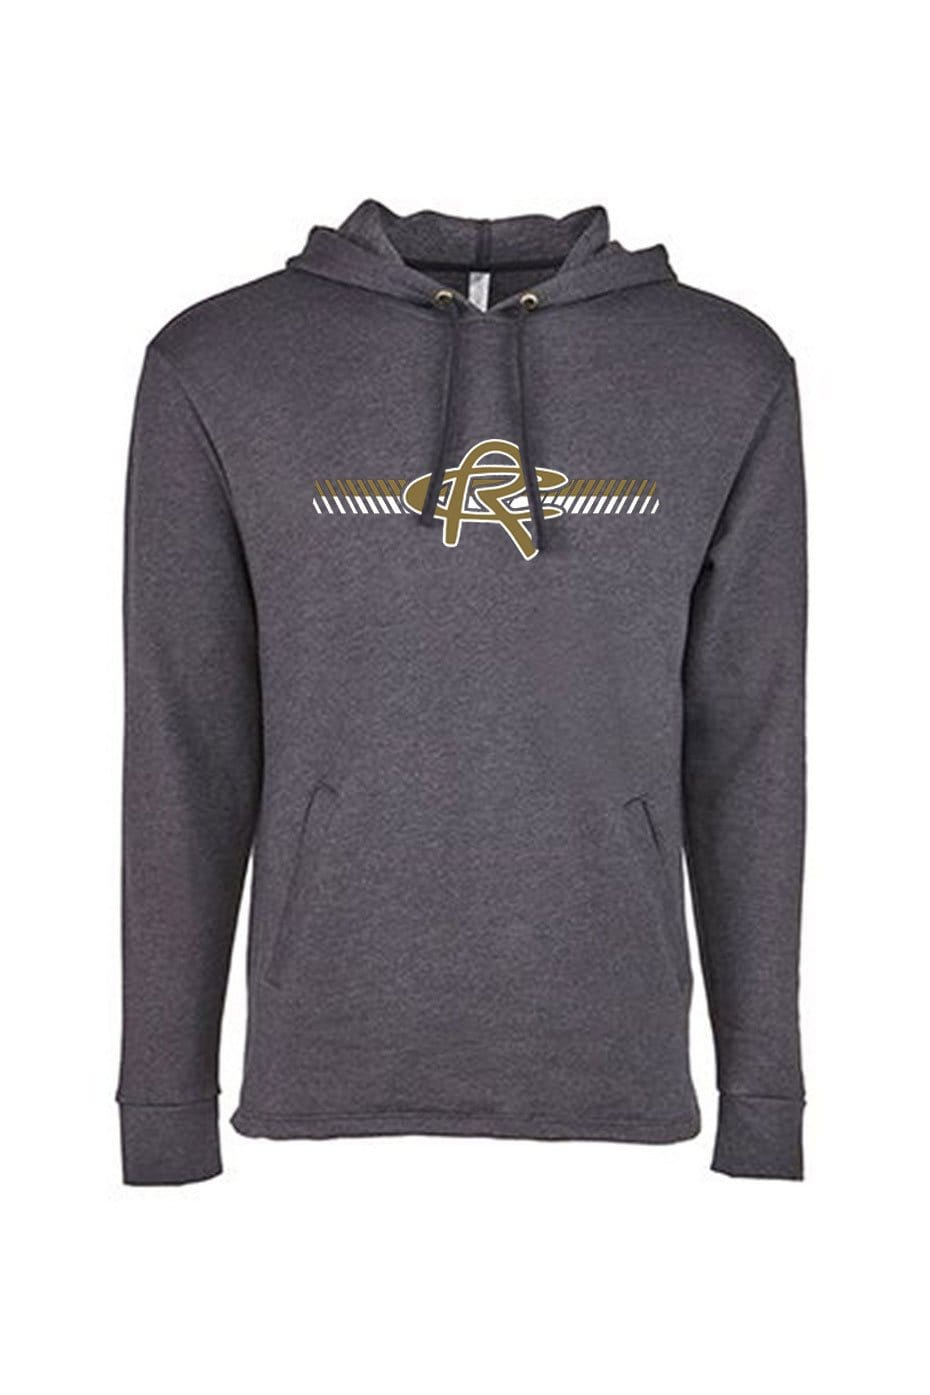 RC Double Angled Lines // Hoodie